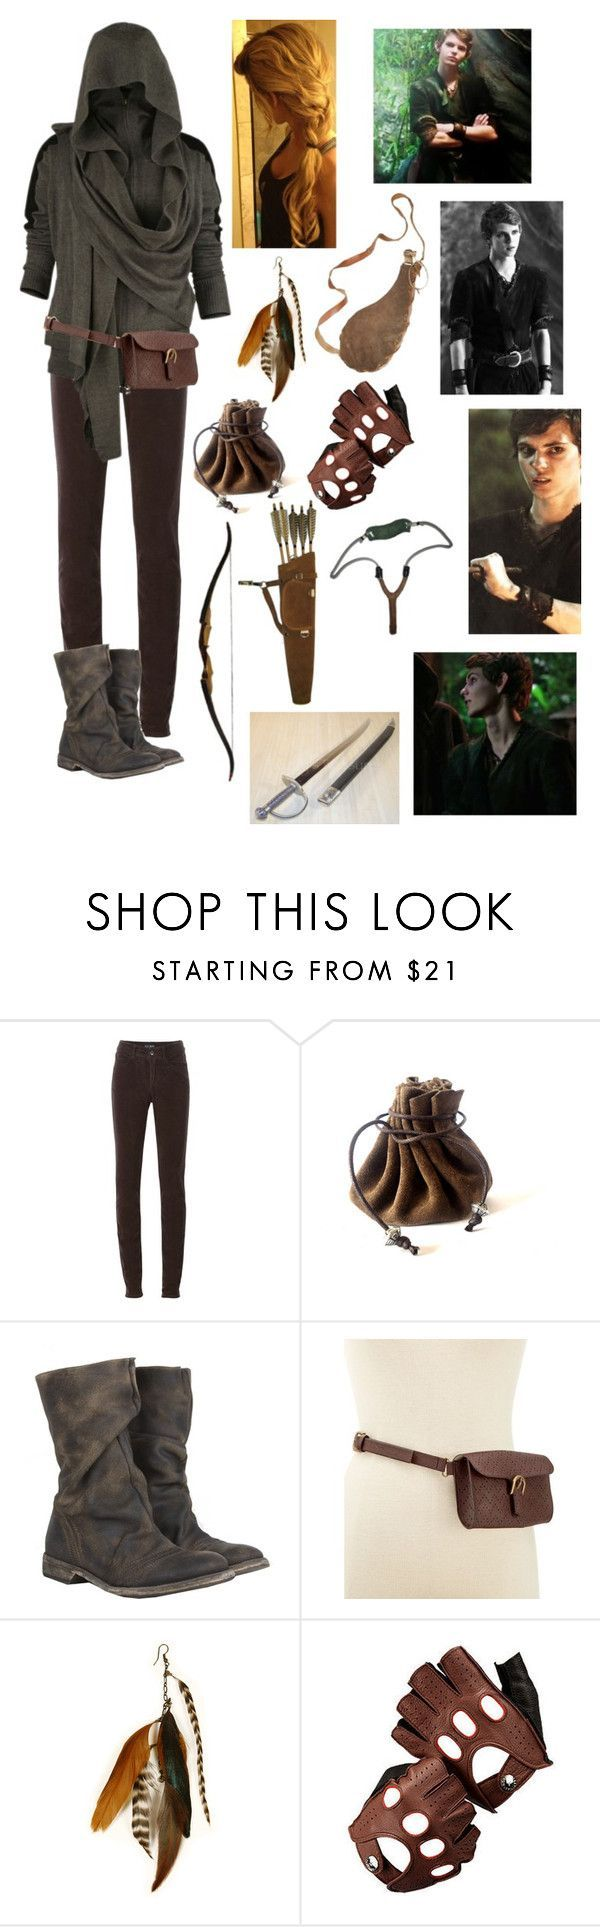 """""""Lost Girl - Peter Pan"""" by blackwidow321 ❤ liked on Polyvore featuring Armani Jeans, AllSaints, Style & Co., Gilded Lily Goods, Aspinal of London, Once Upon a Time, women's clothing, women, female and woman"""